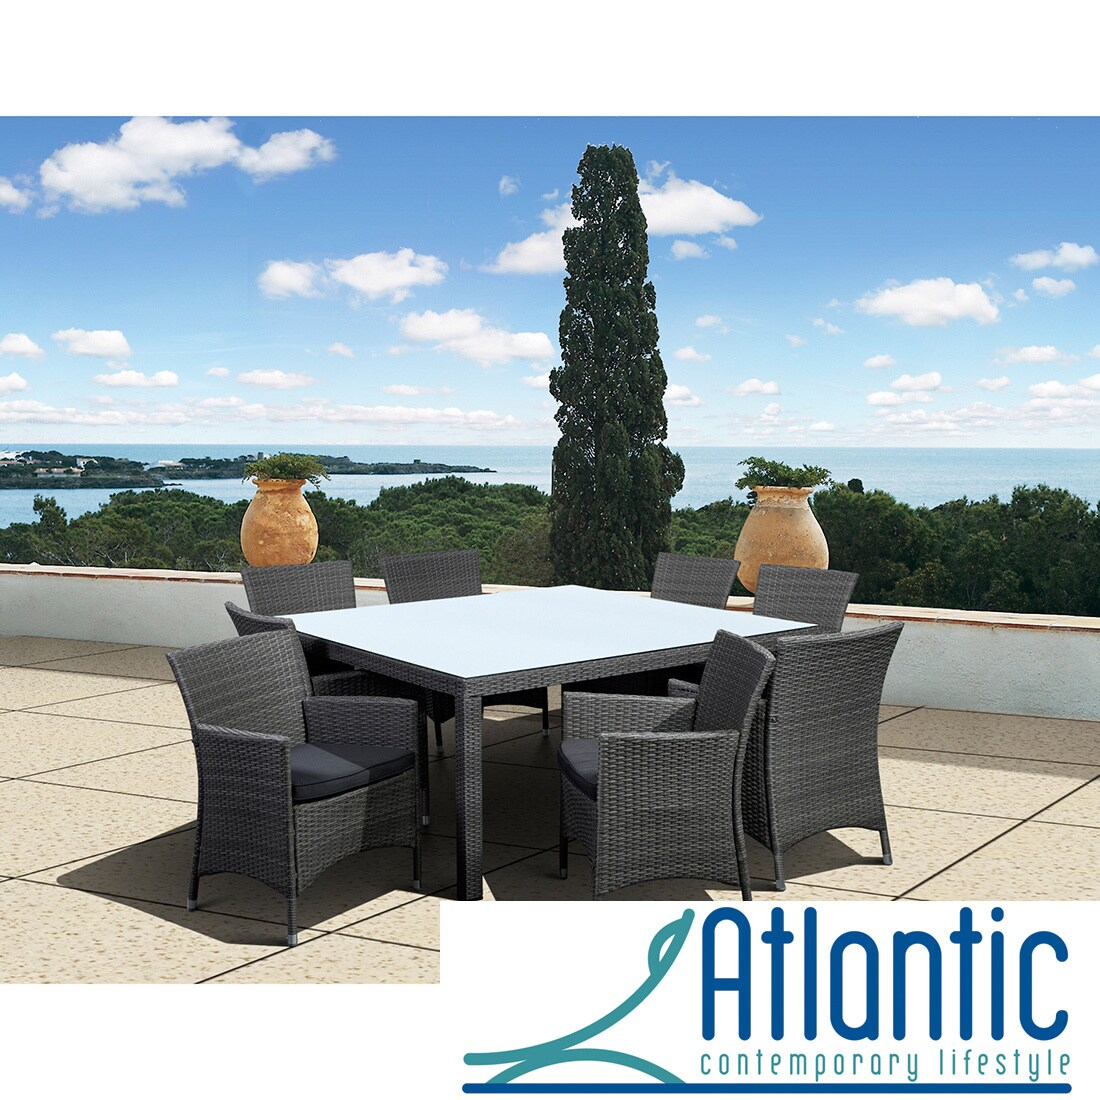 Atlantic Grand Liberty Deluxe 9 Piece Square Dining Set at Sears.com